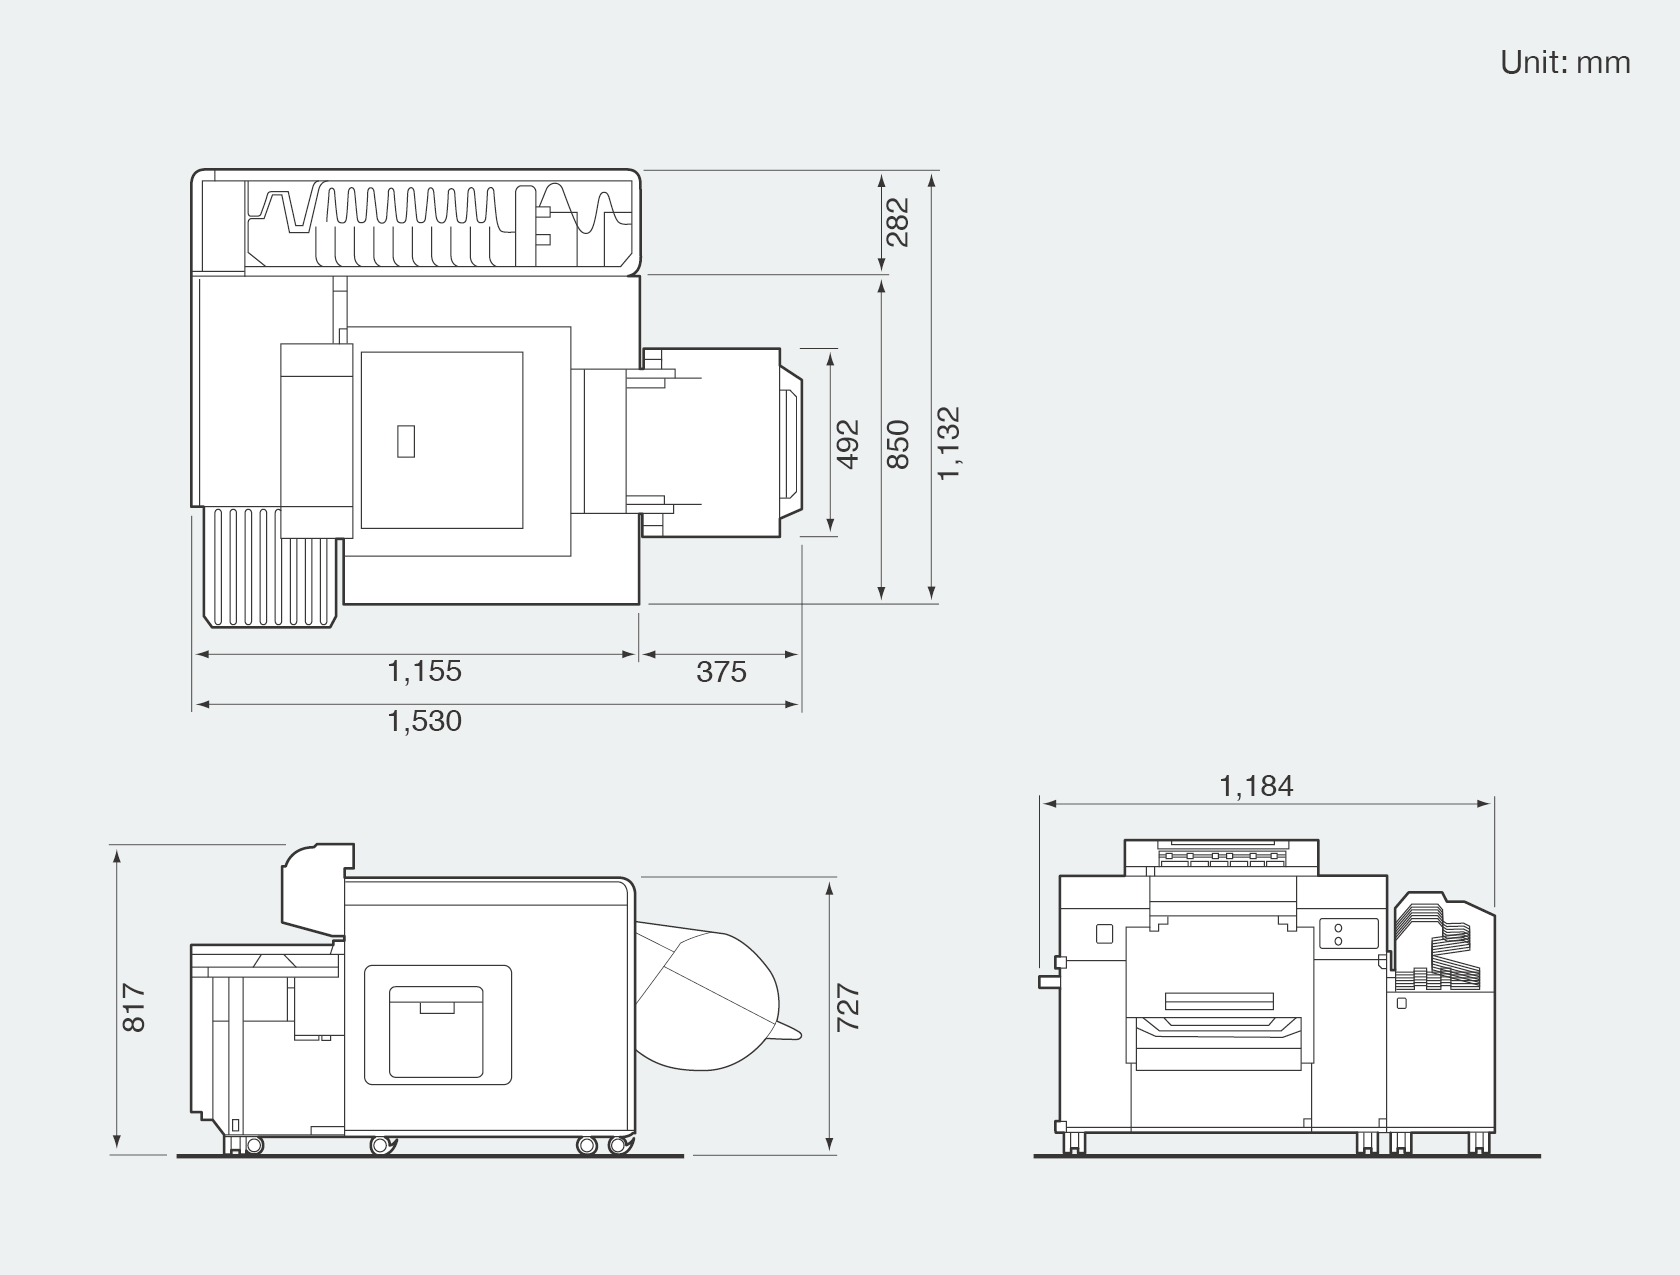 [image] Front, side, and top view graphic of Frontier DL600 which shows height, width, and depth dimensions